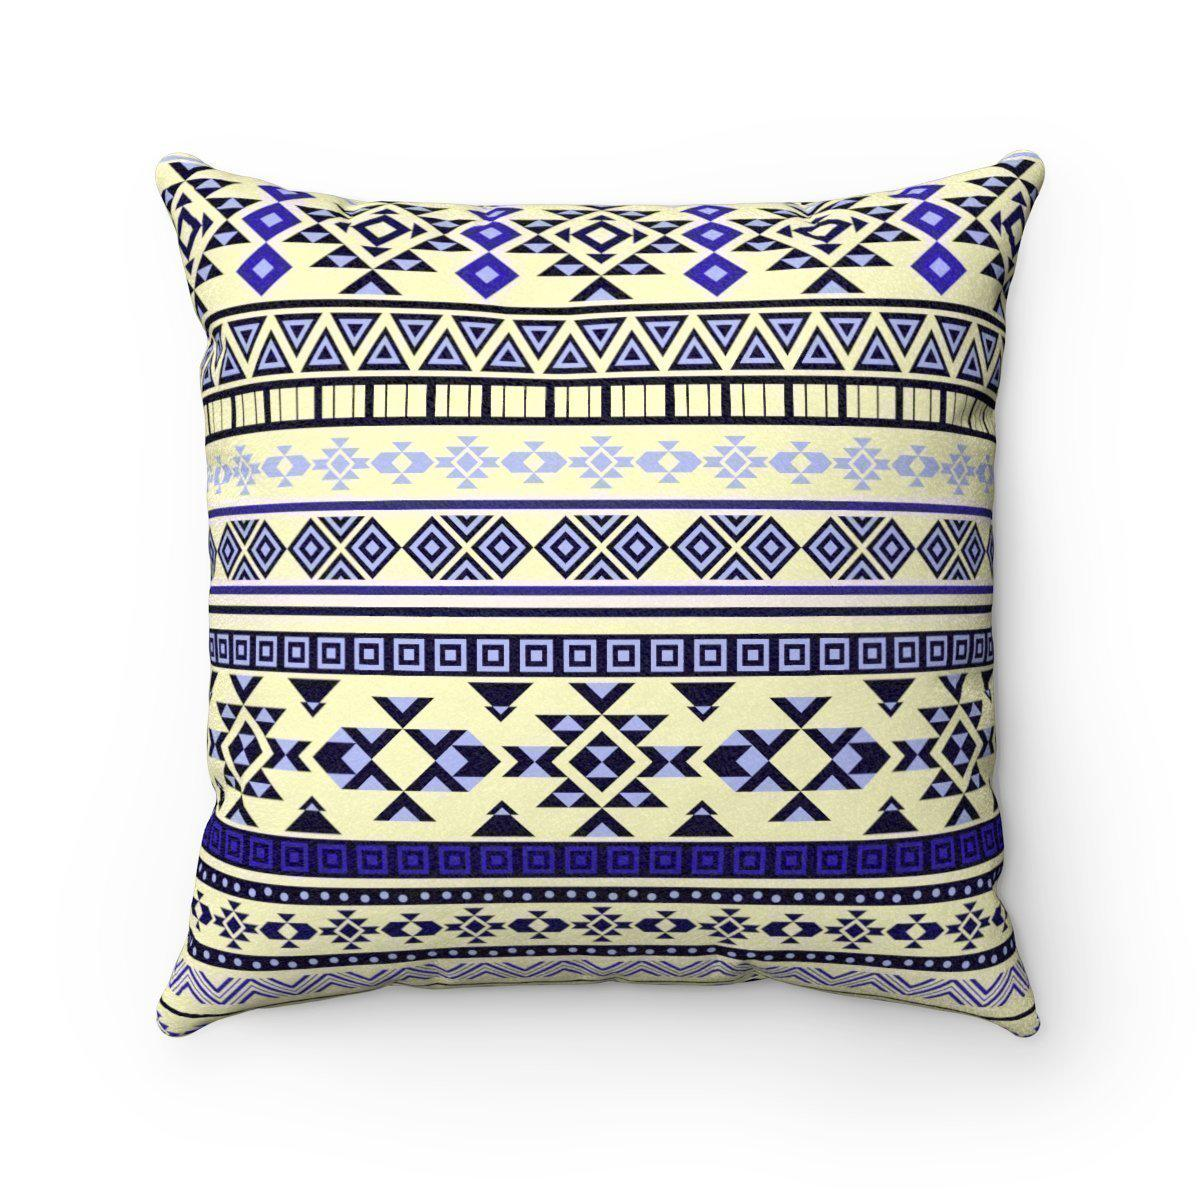 2 in 1 Double sided faux suede ethnic decorative pillow w/insert-Home Decor - Decorative Accents - Pillows & Throws - Decorative Pillows-Maison d'Elite-18x18-Très Elite